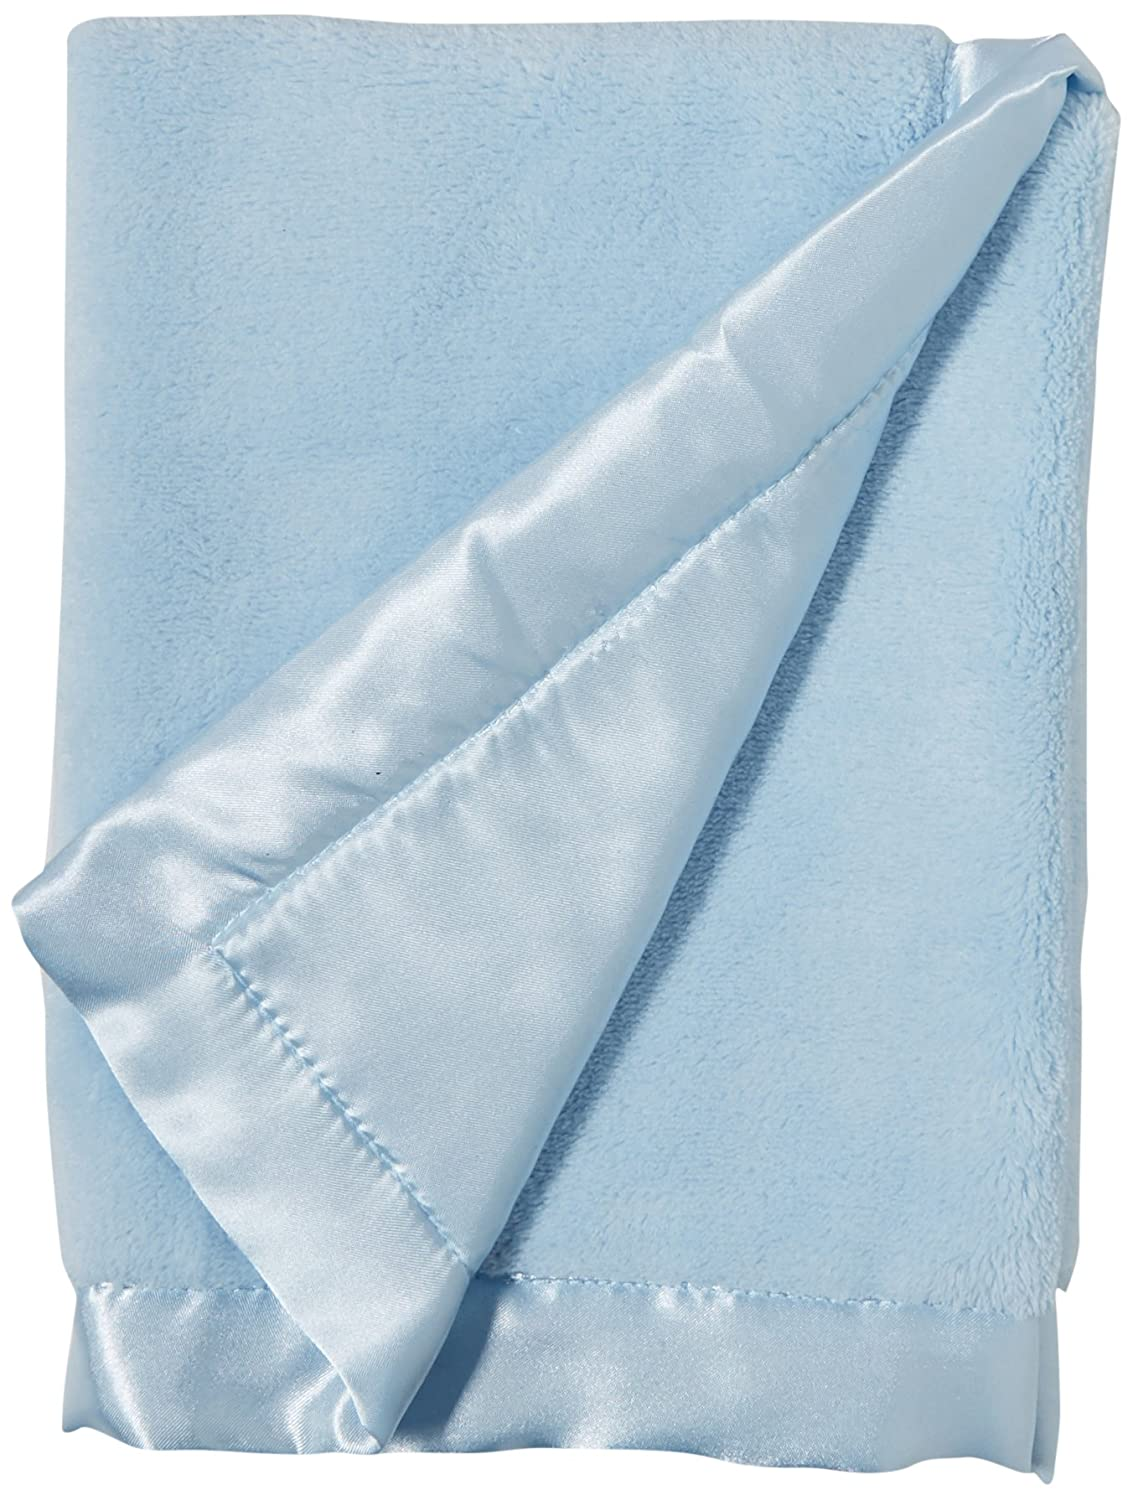 Elegant Baby Ultra Plush Blankie, Satin Border and Back Blankie 20 x 20 Inch in Baby Blue 87634